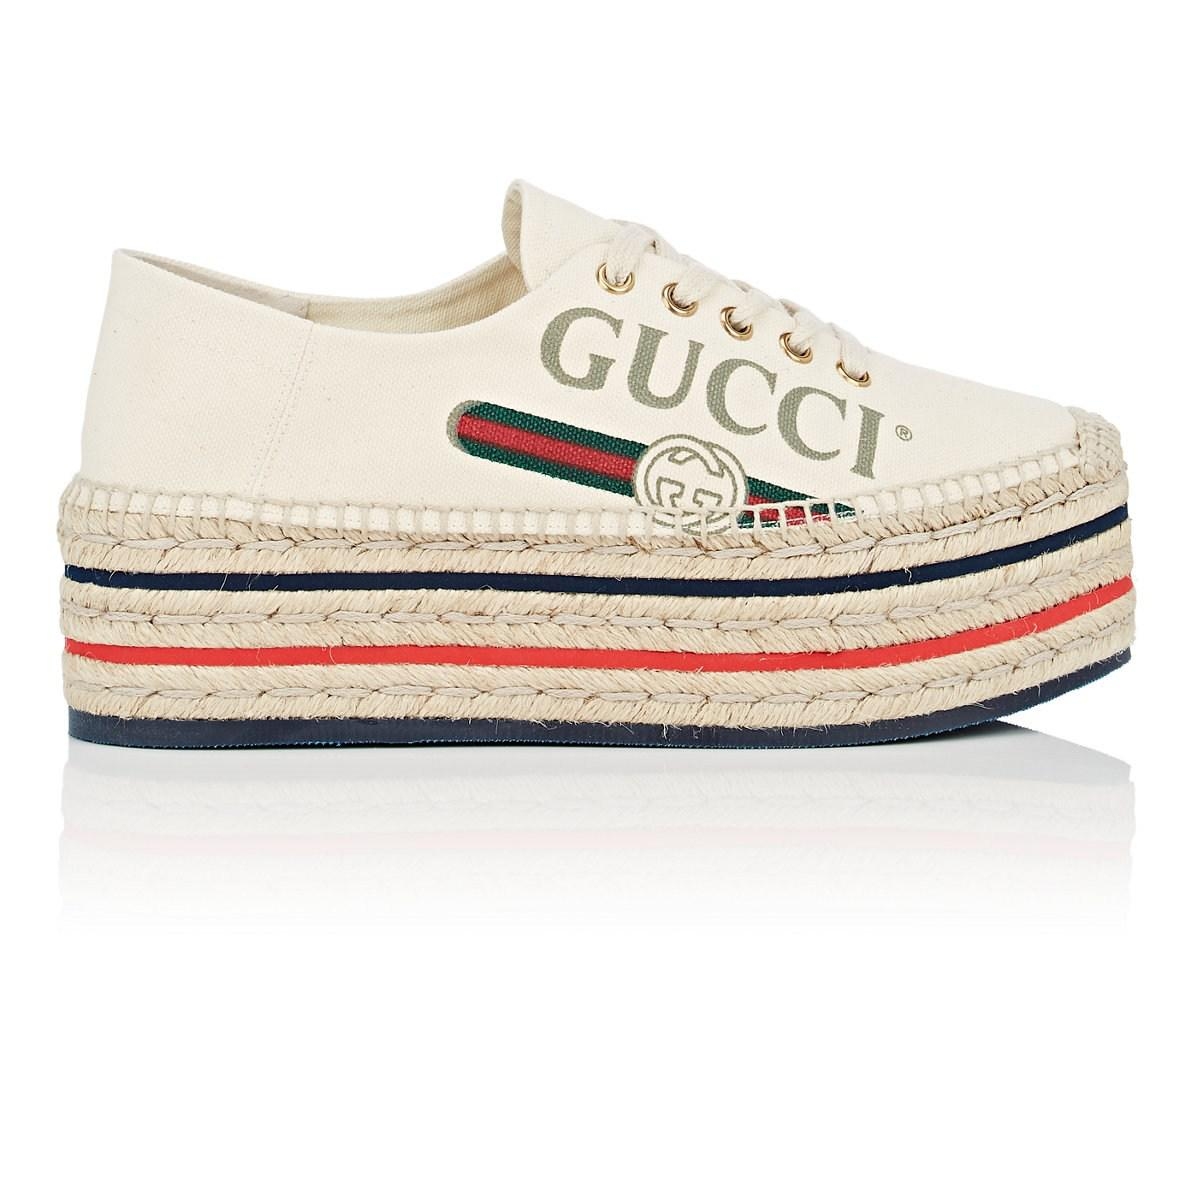 a23f110c9e2688 Lyst - Gucci Canvas Platform Espadrille Sneakers in White - Save 20%